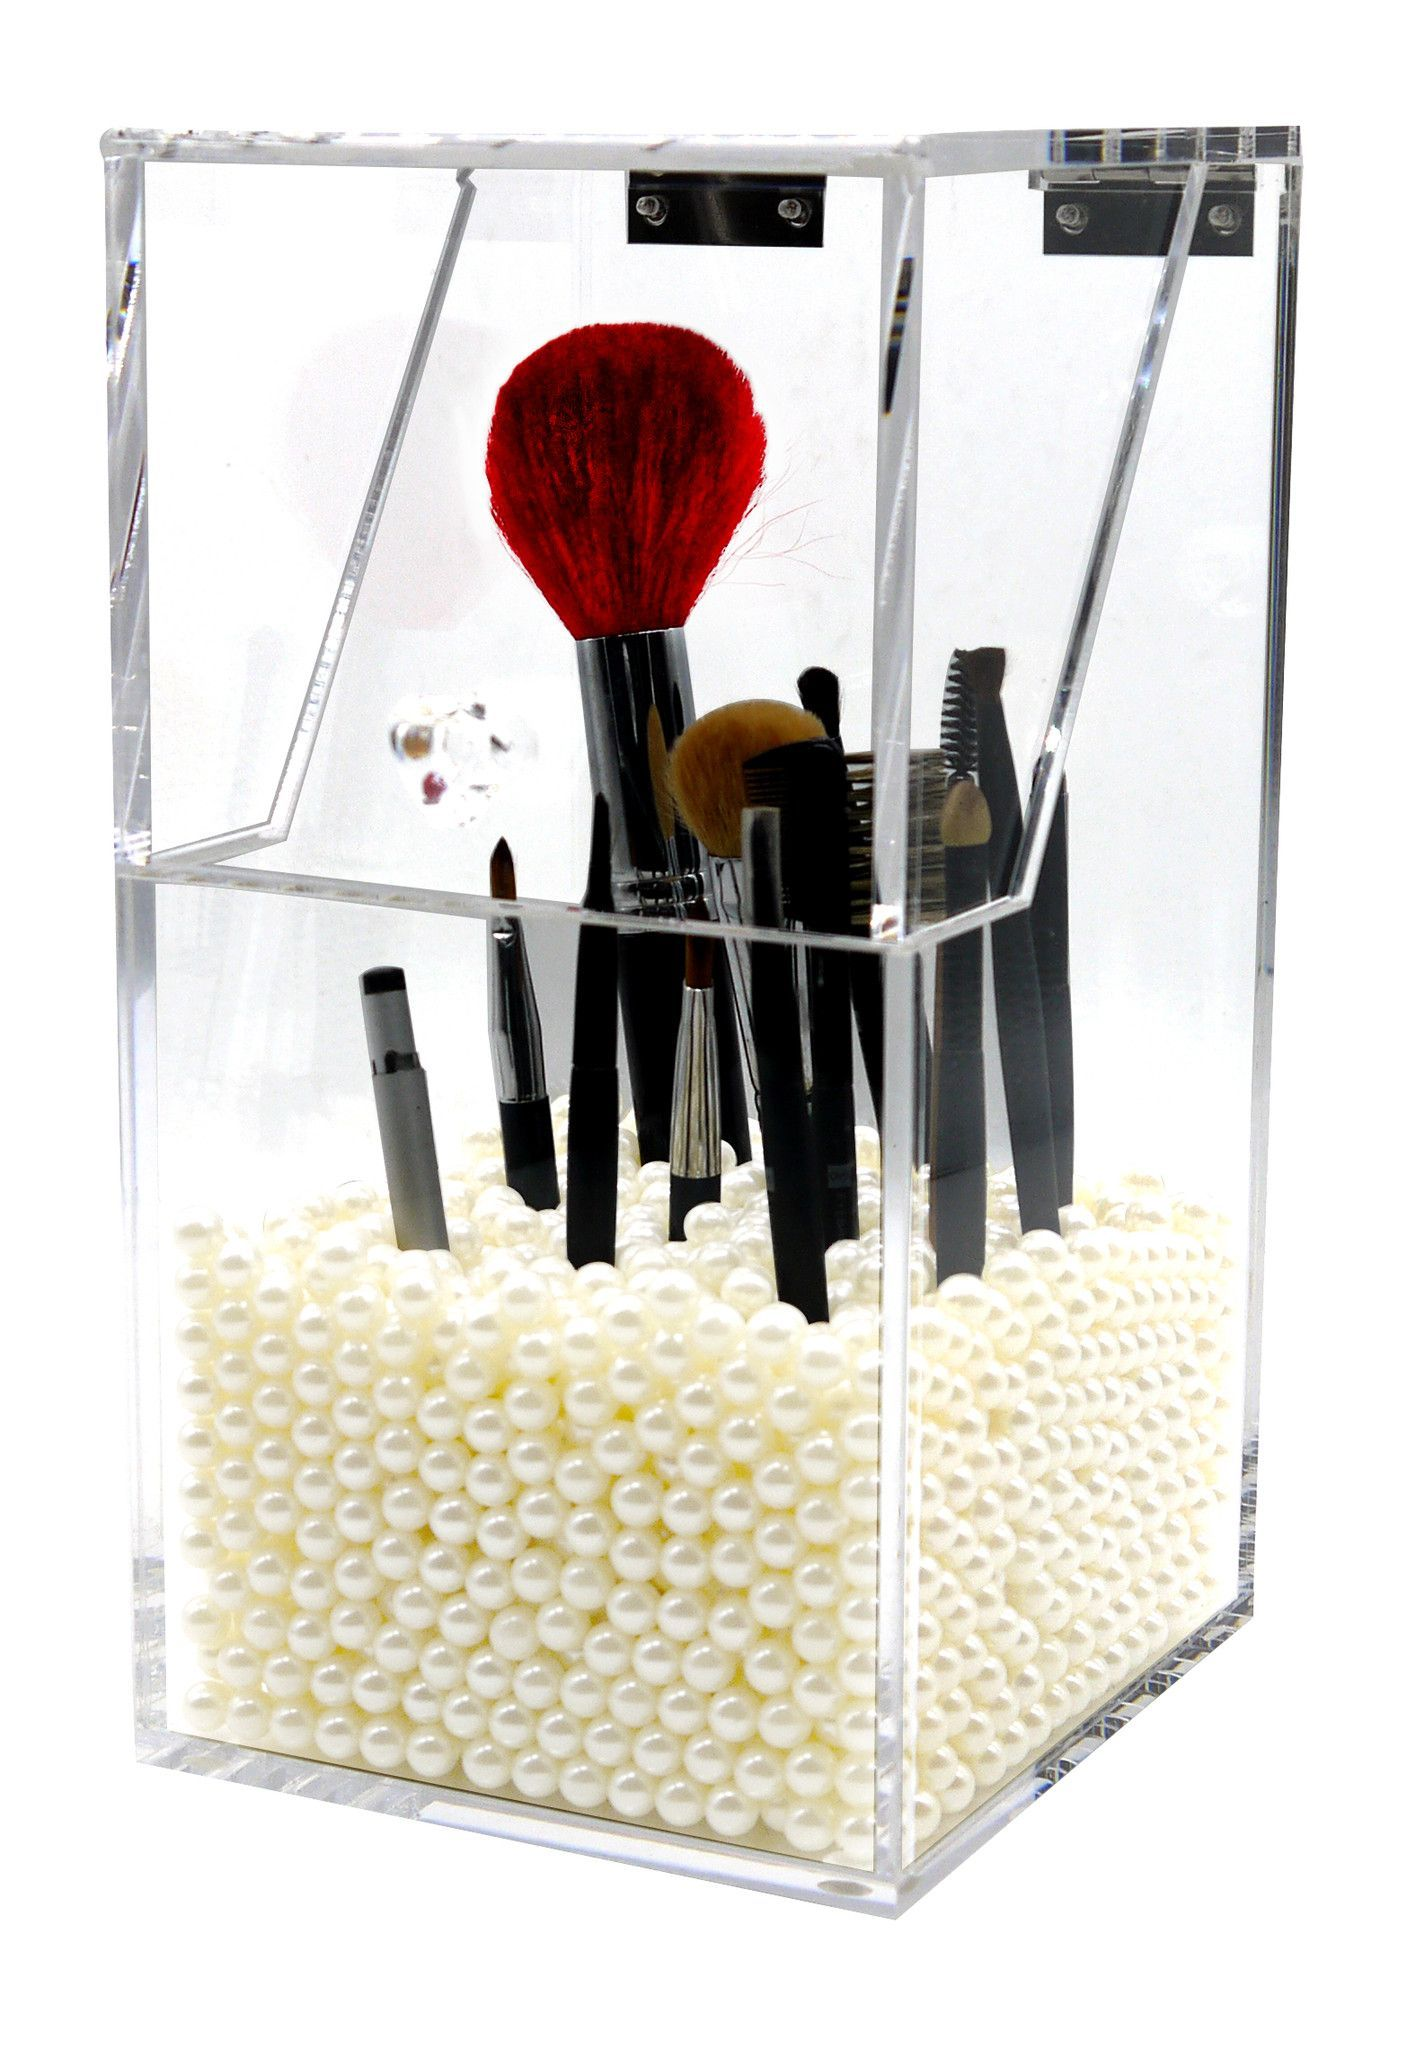 Make Up Brush Holder Dustproof Storage Box Premium Quality 5mm Thick  Acrylic Makeup Organiser PuTwo Make Up Brush Holder Dustproof Storage Box  Premium ...